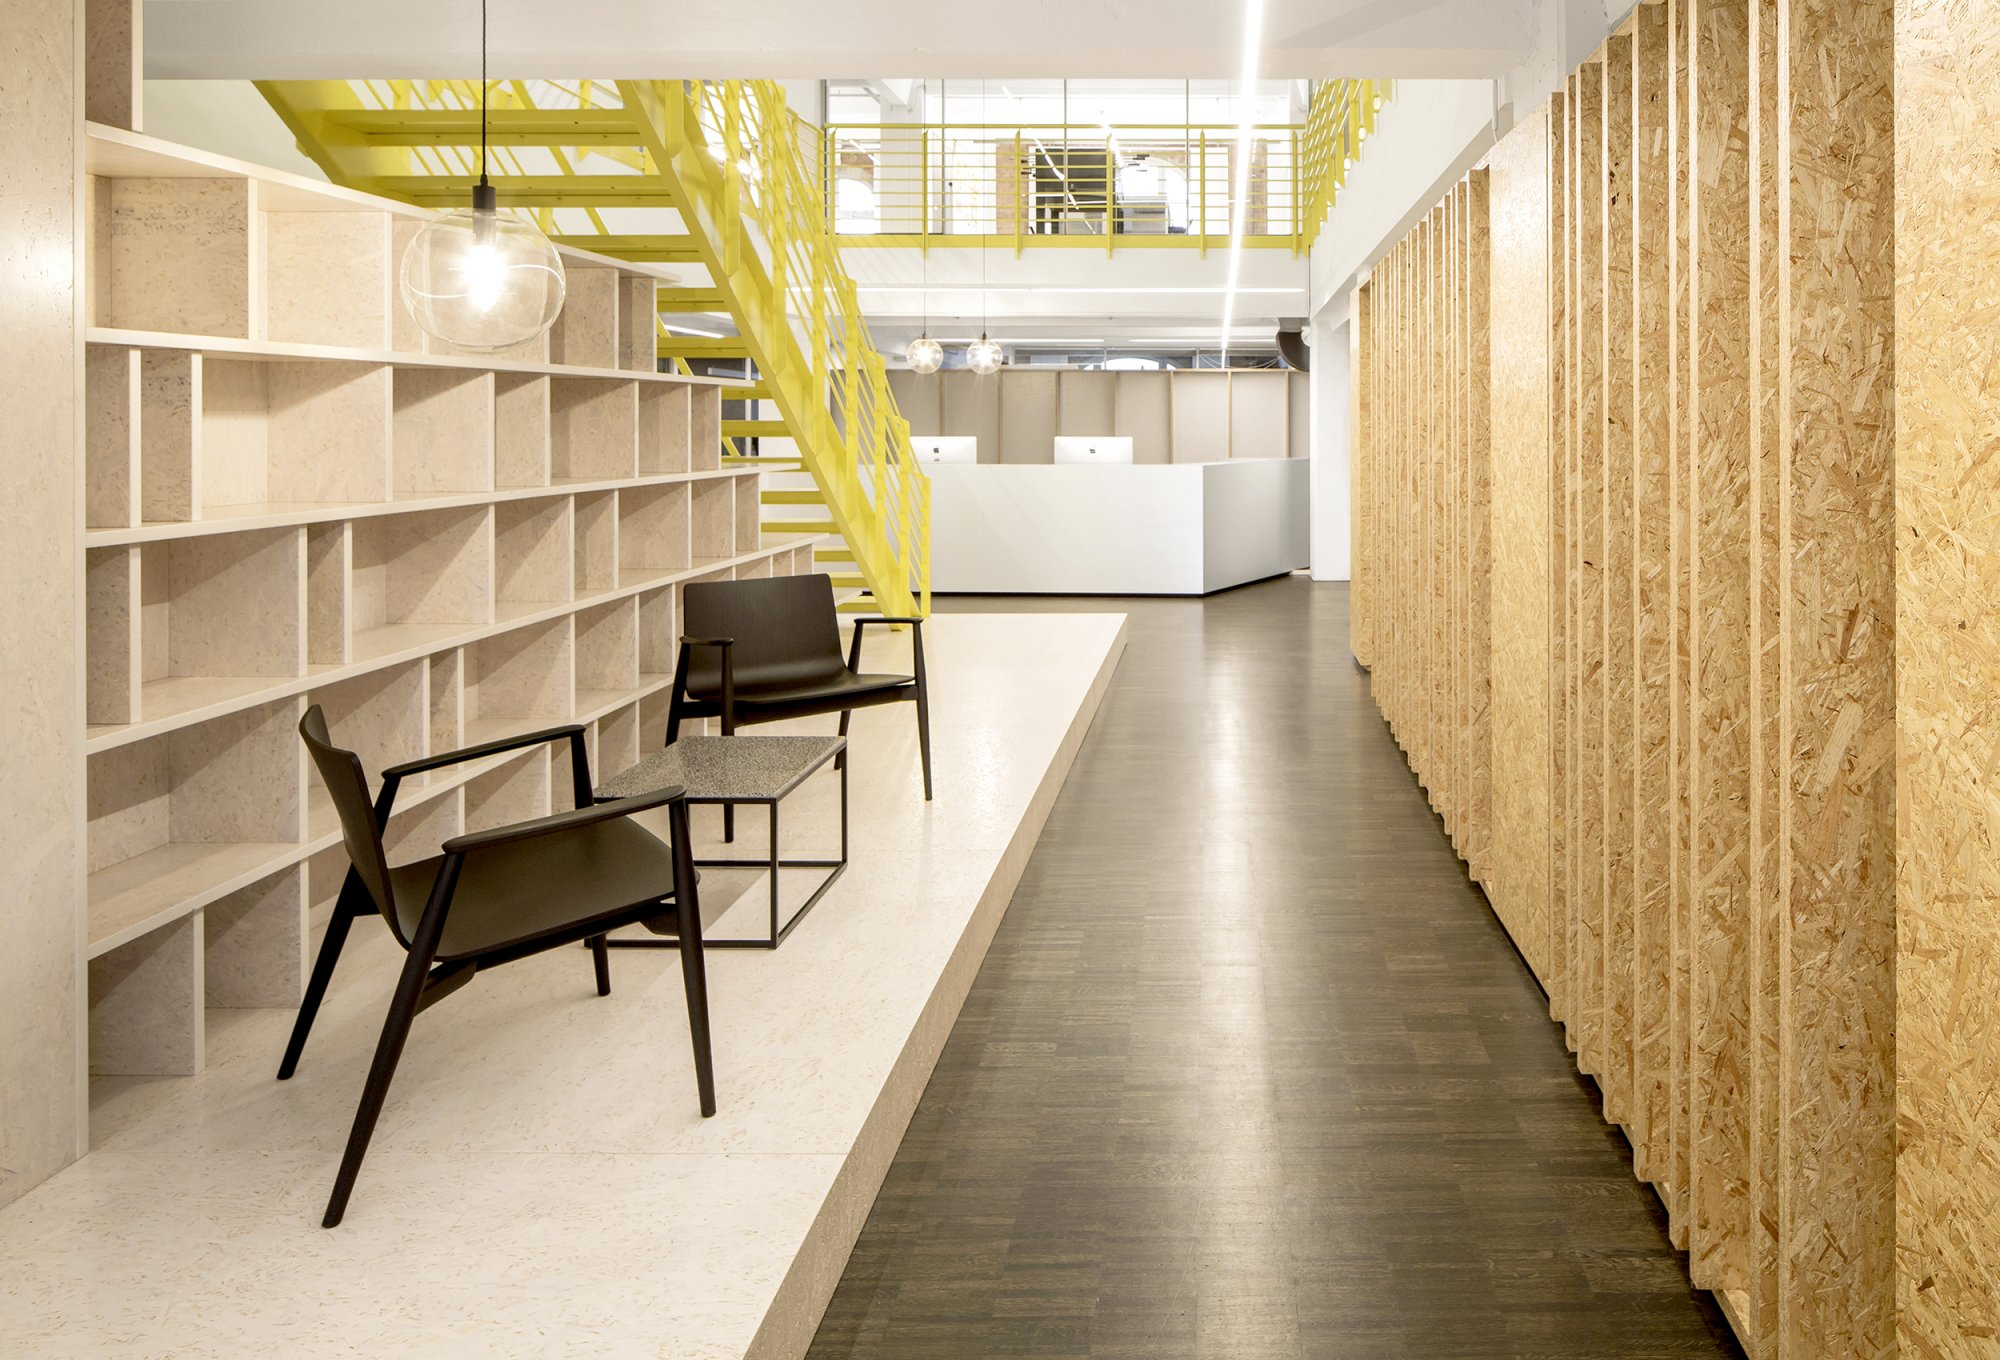 Razorfish Bibliothek Regal OSB Lamellen gelbe Treppe LED Licht Linien Office Design by Batek Architekten